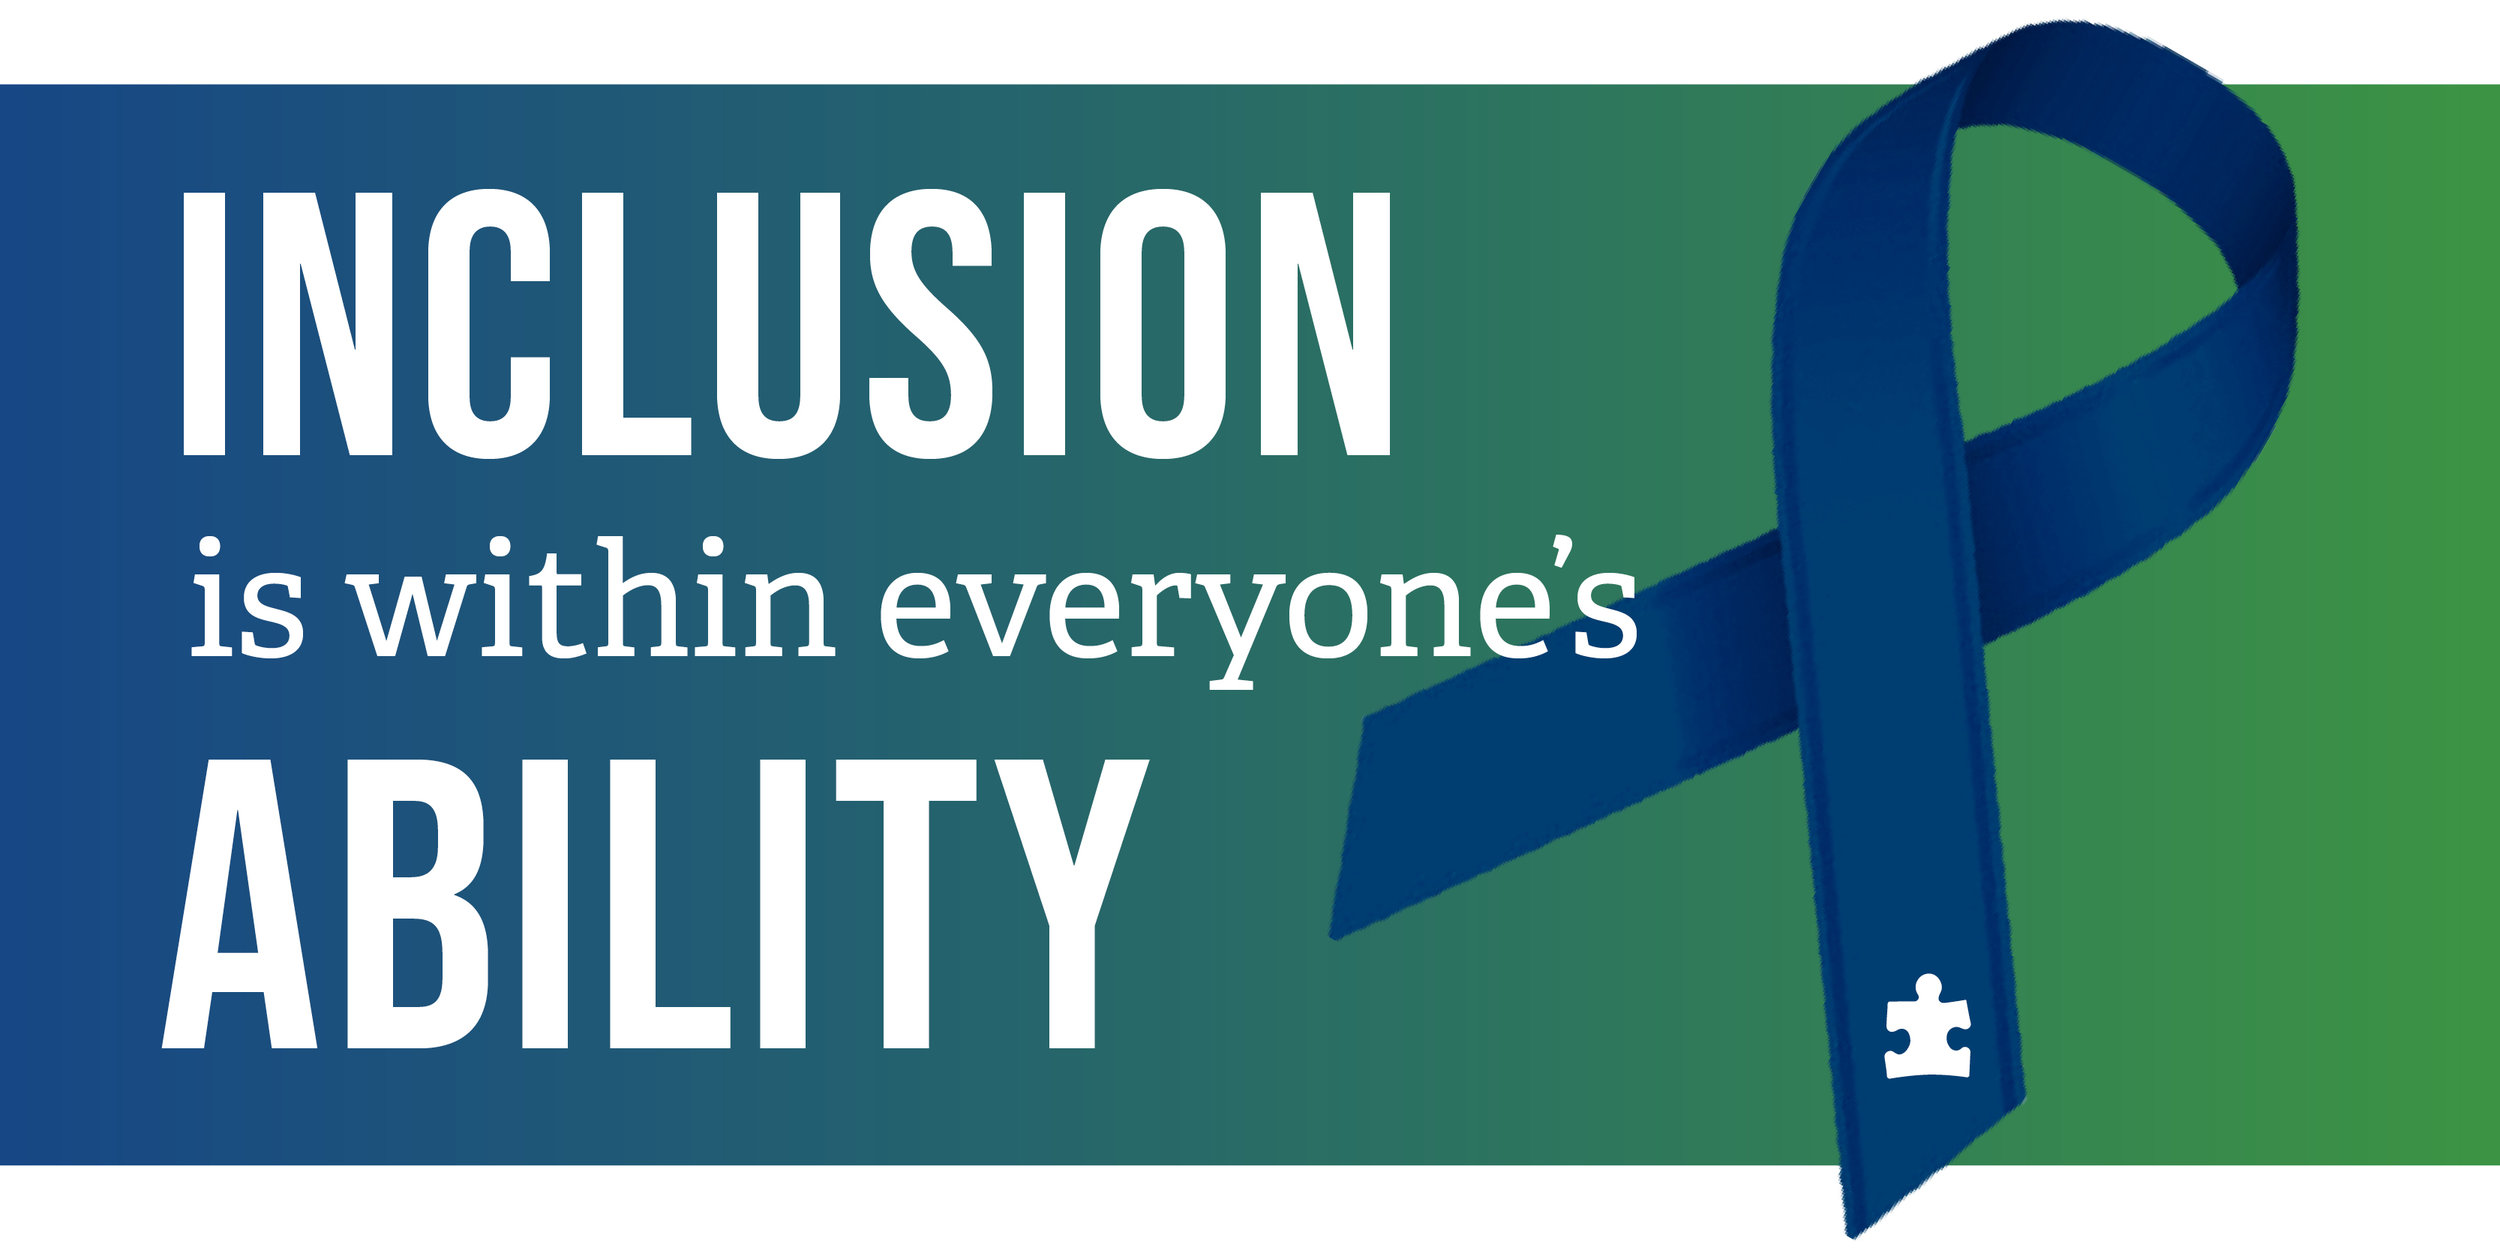 WWRCF Inclusion Is Within Everyone's Ability.jpg